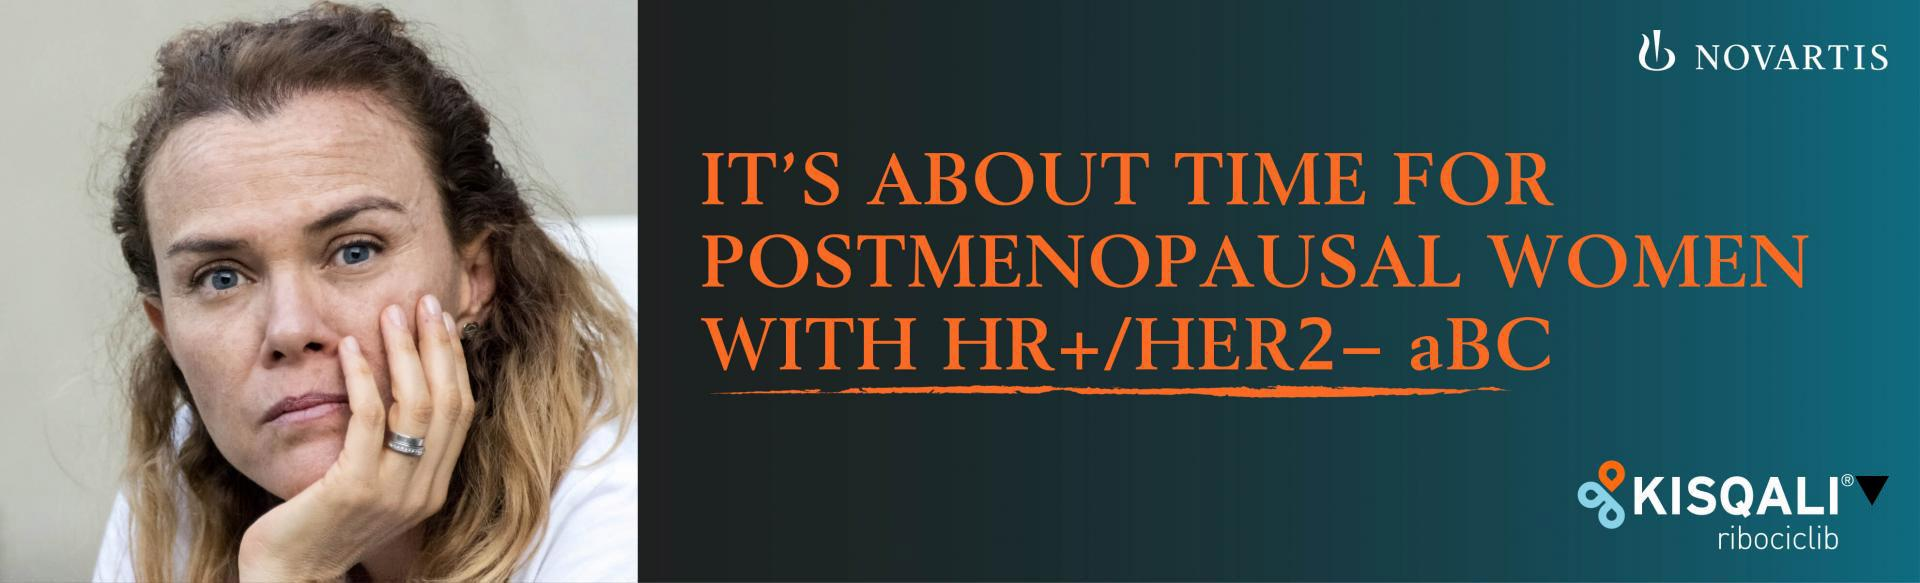 Top banner. Woman headshot. IT'S ABOUT TIME FOR POSTMENOPAUSAL WOMEN WITH HER+/HER2 Abc.